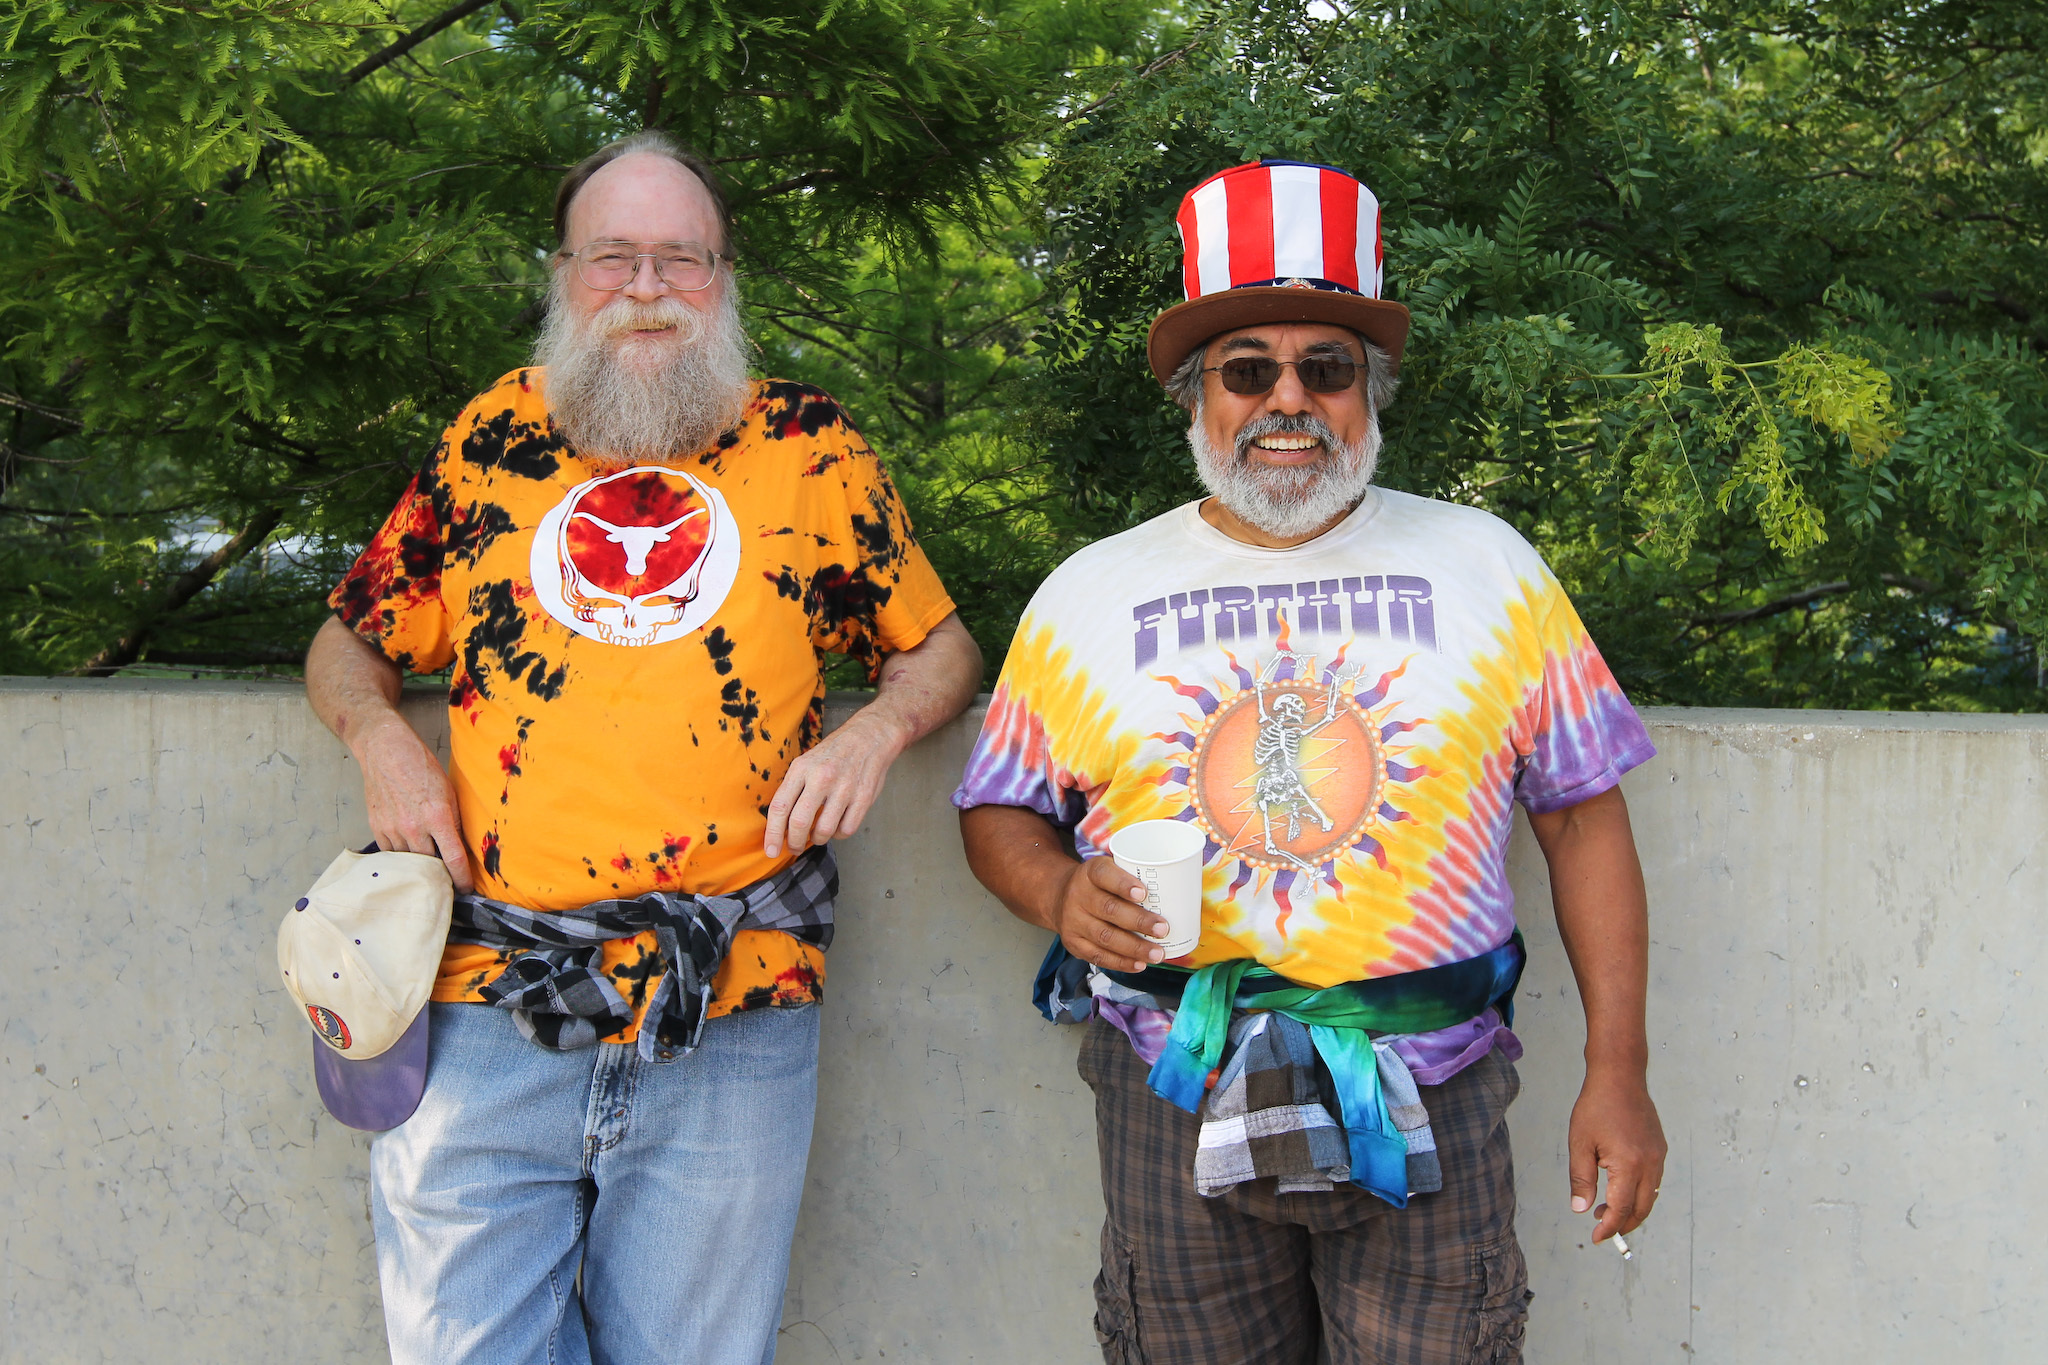 Grateful Dead fans swarm into Soldier Field parking lots